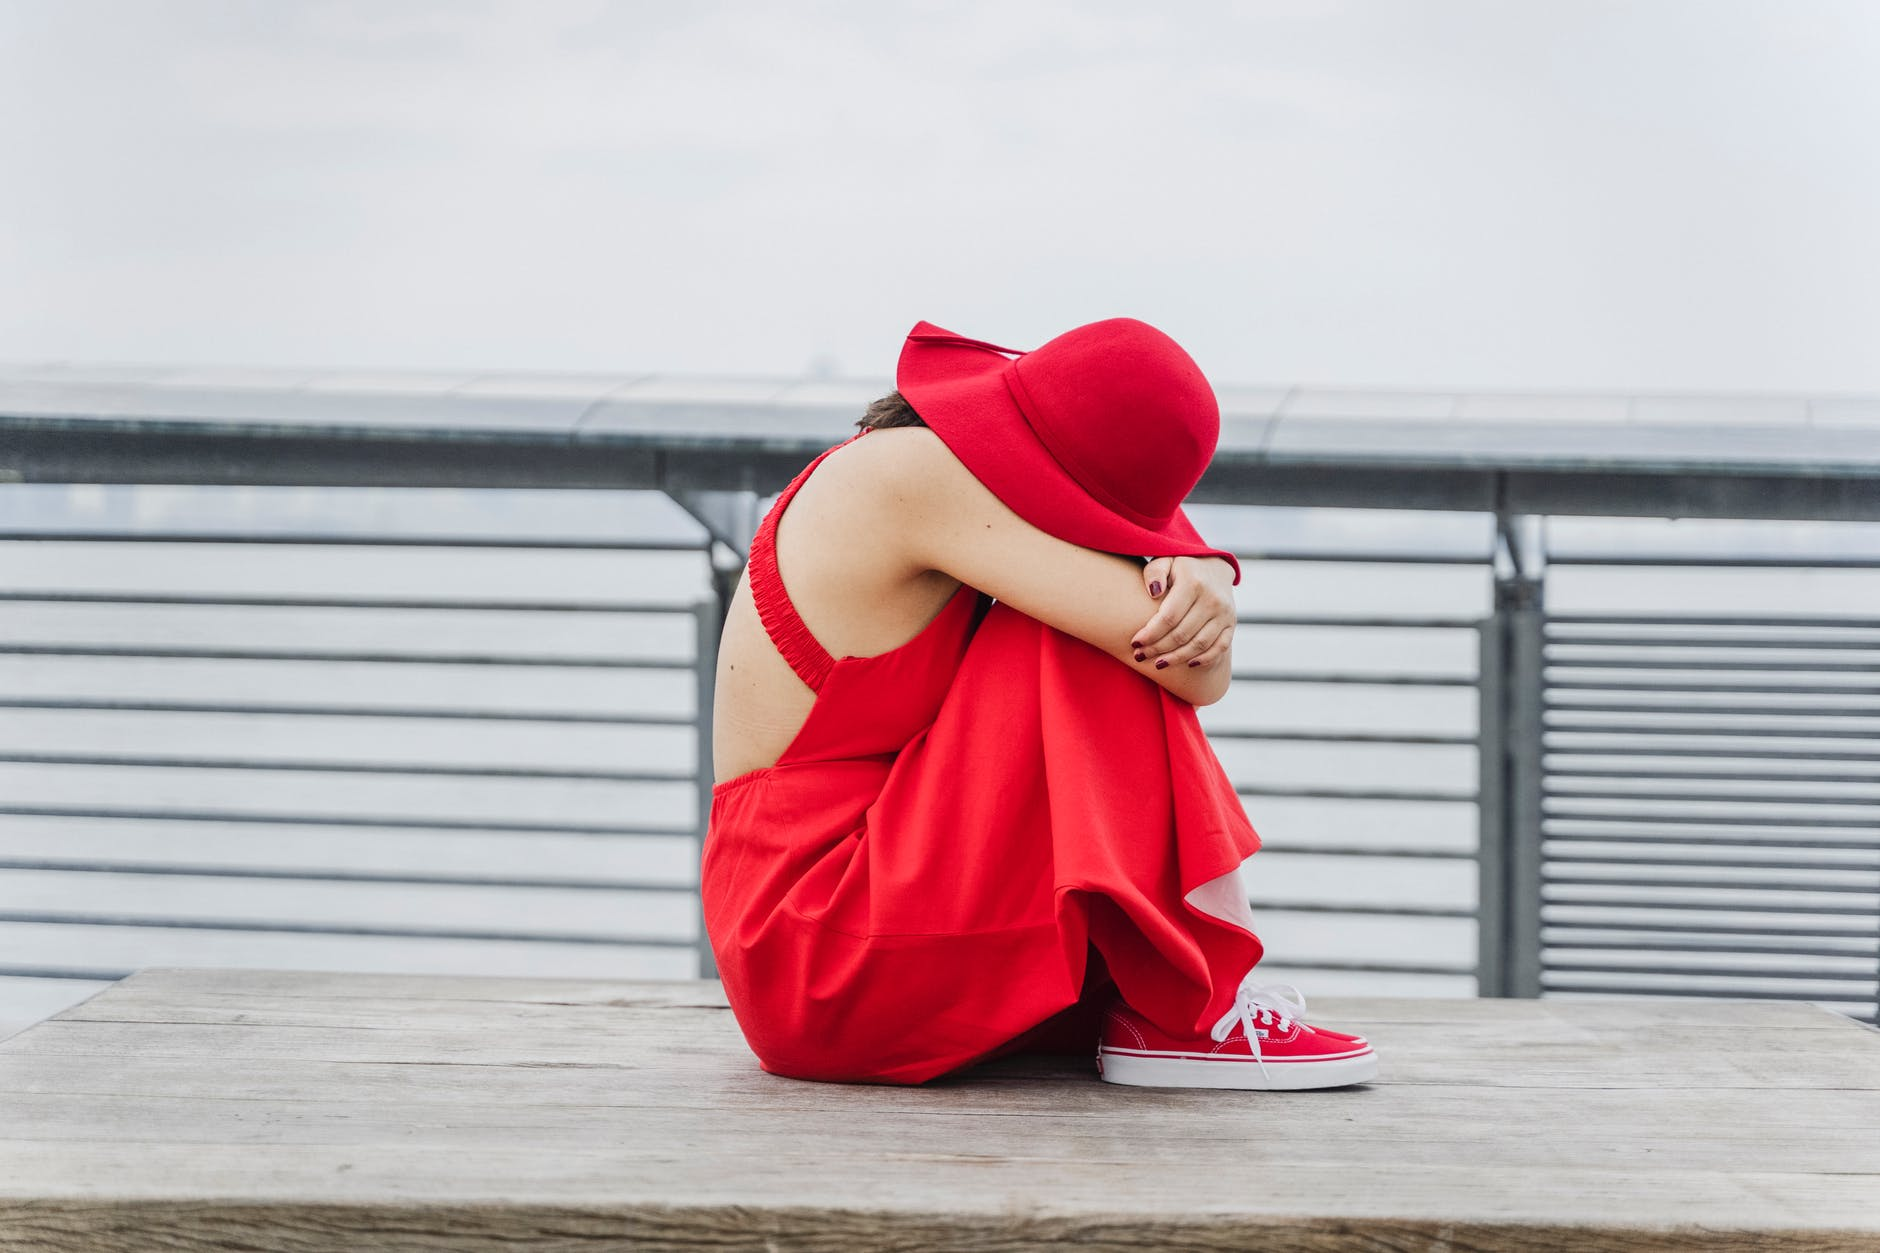 woman in red dress sitting on a wooden bench